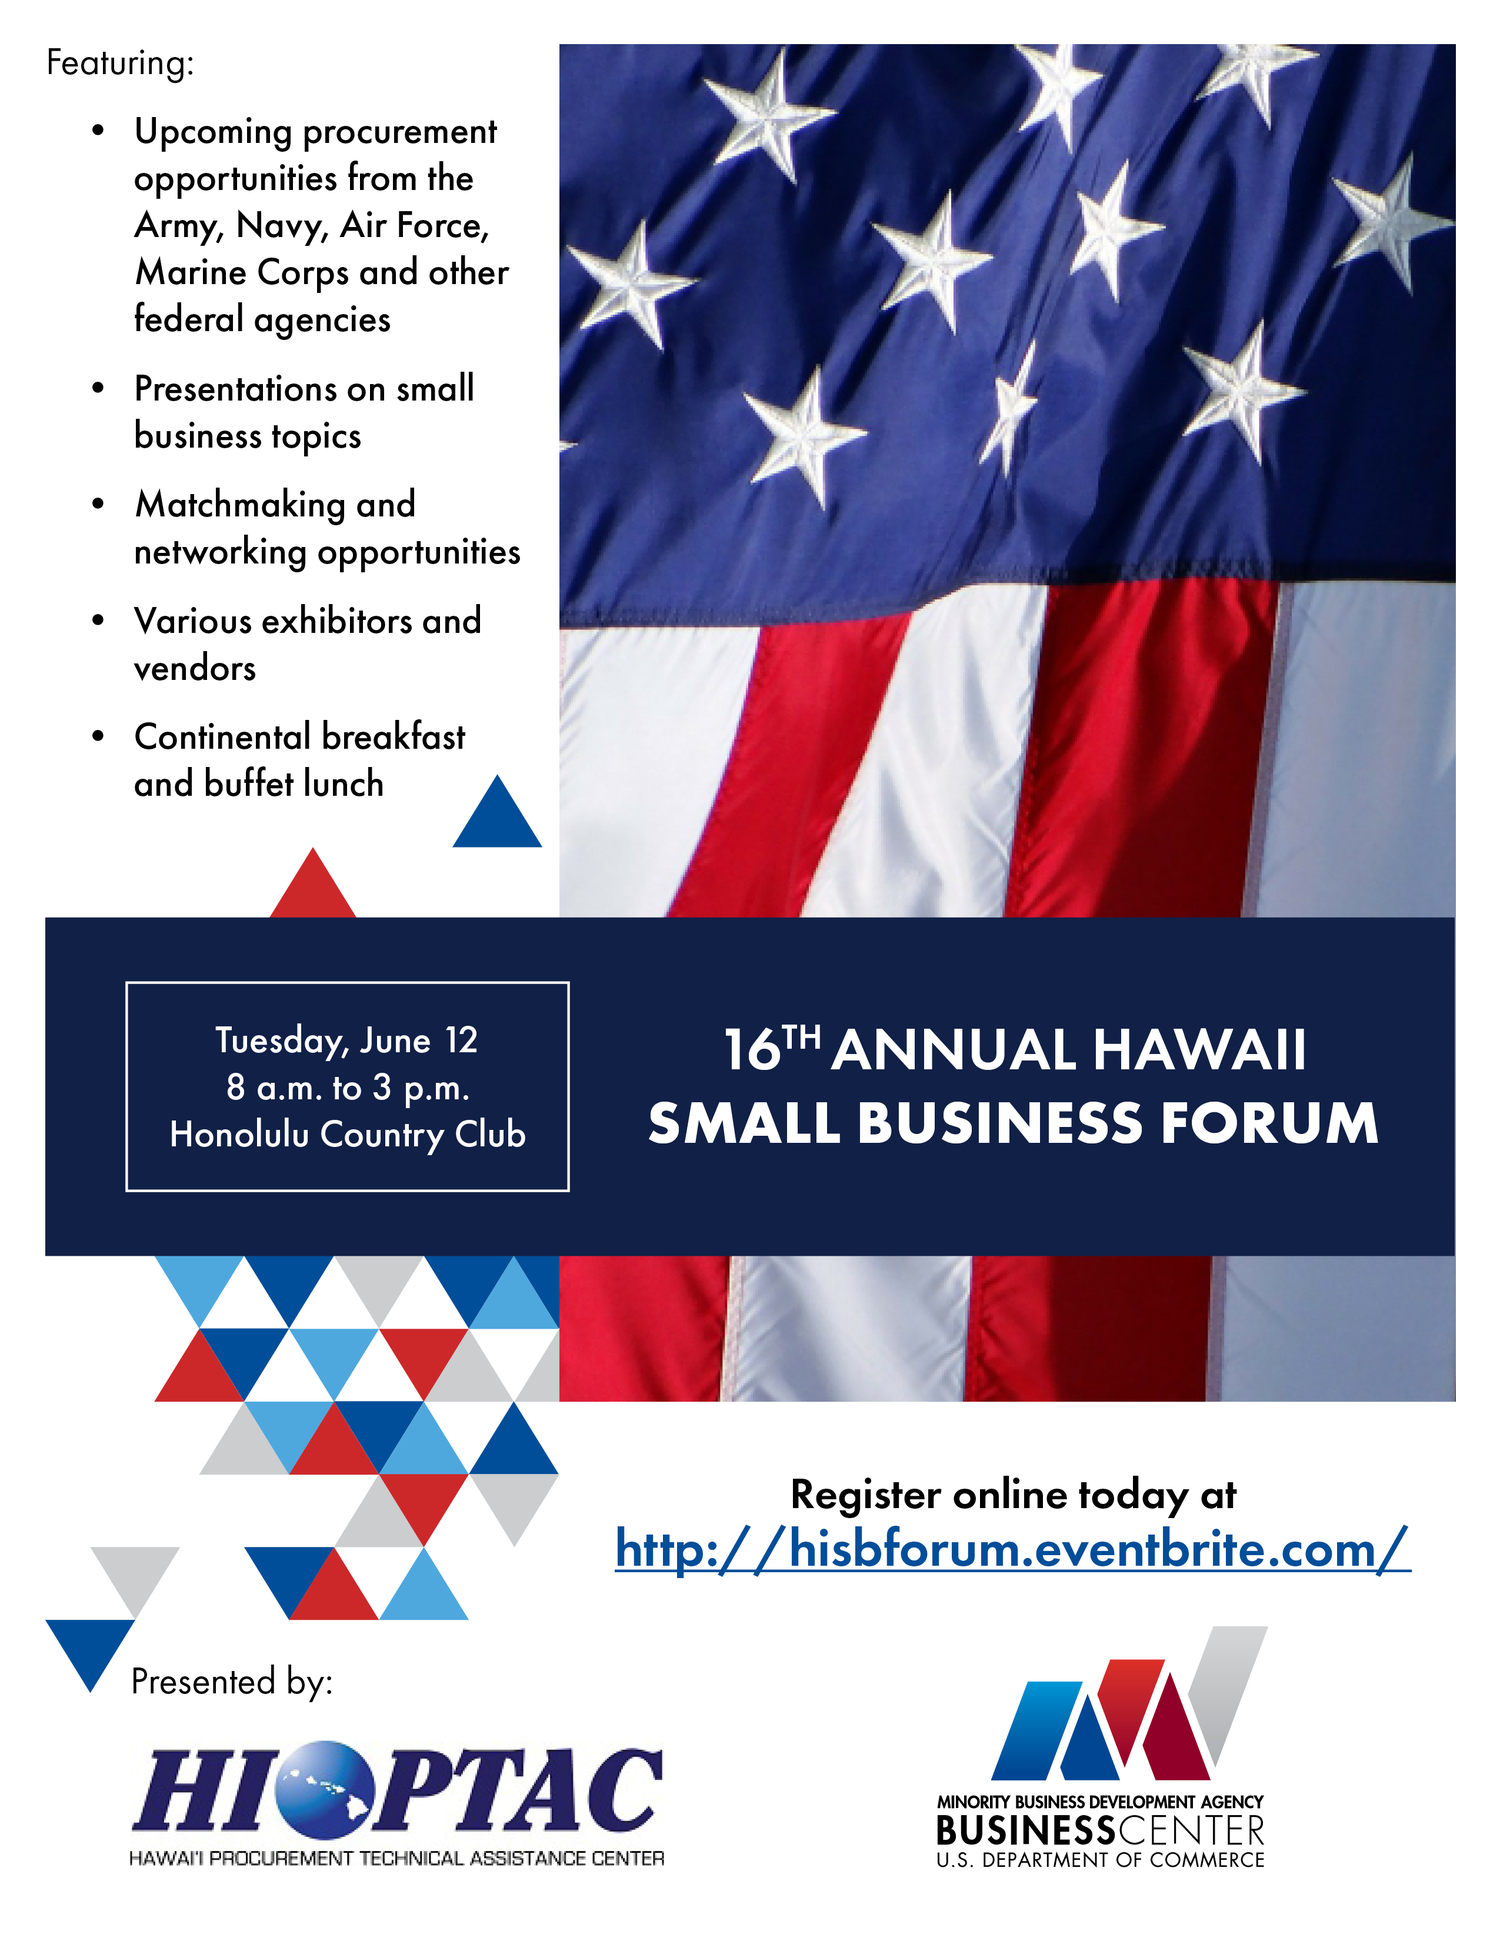 16th Annual Hawaii Small Business Forum — MBDA Business